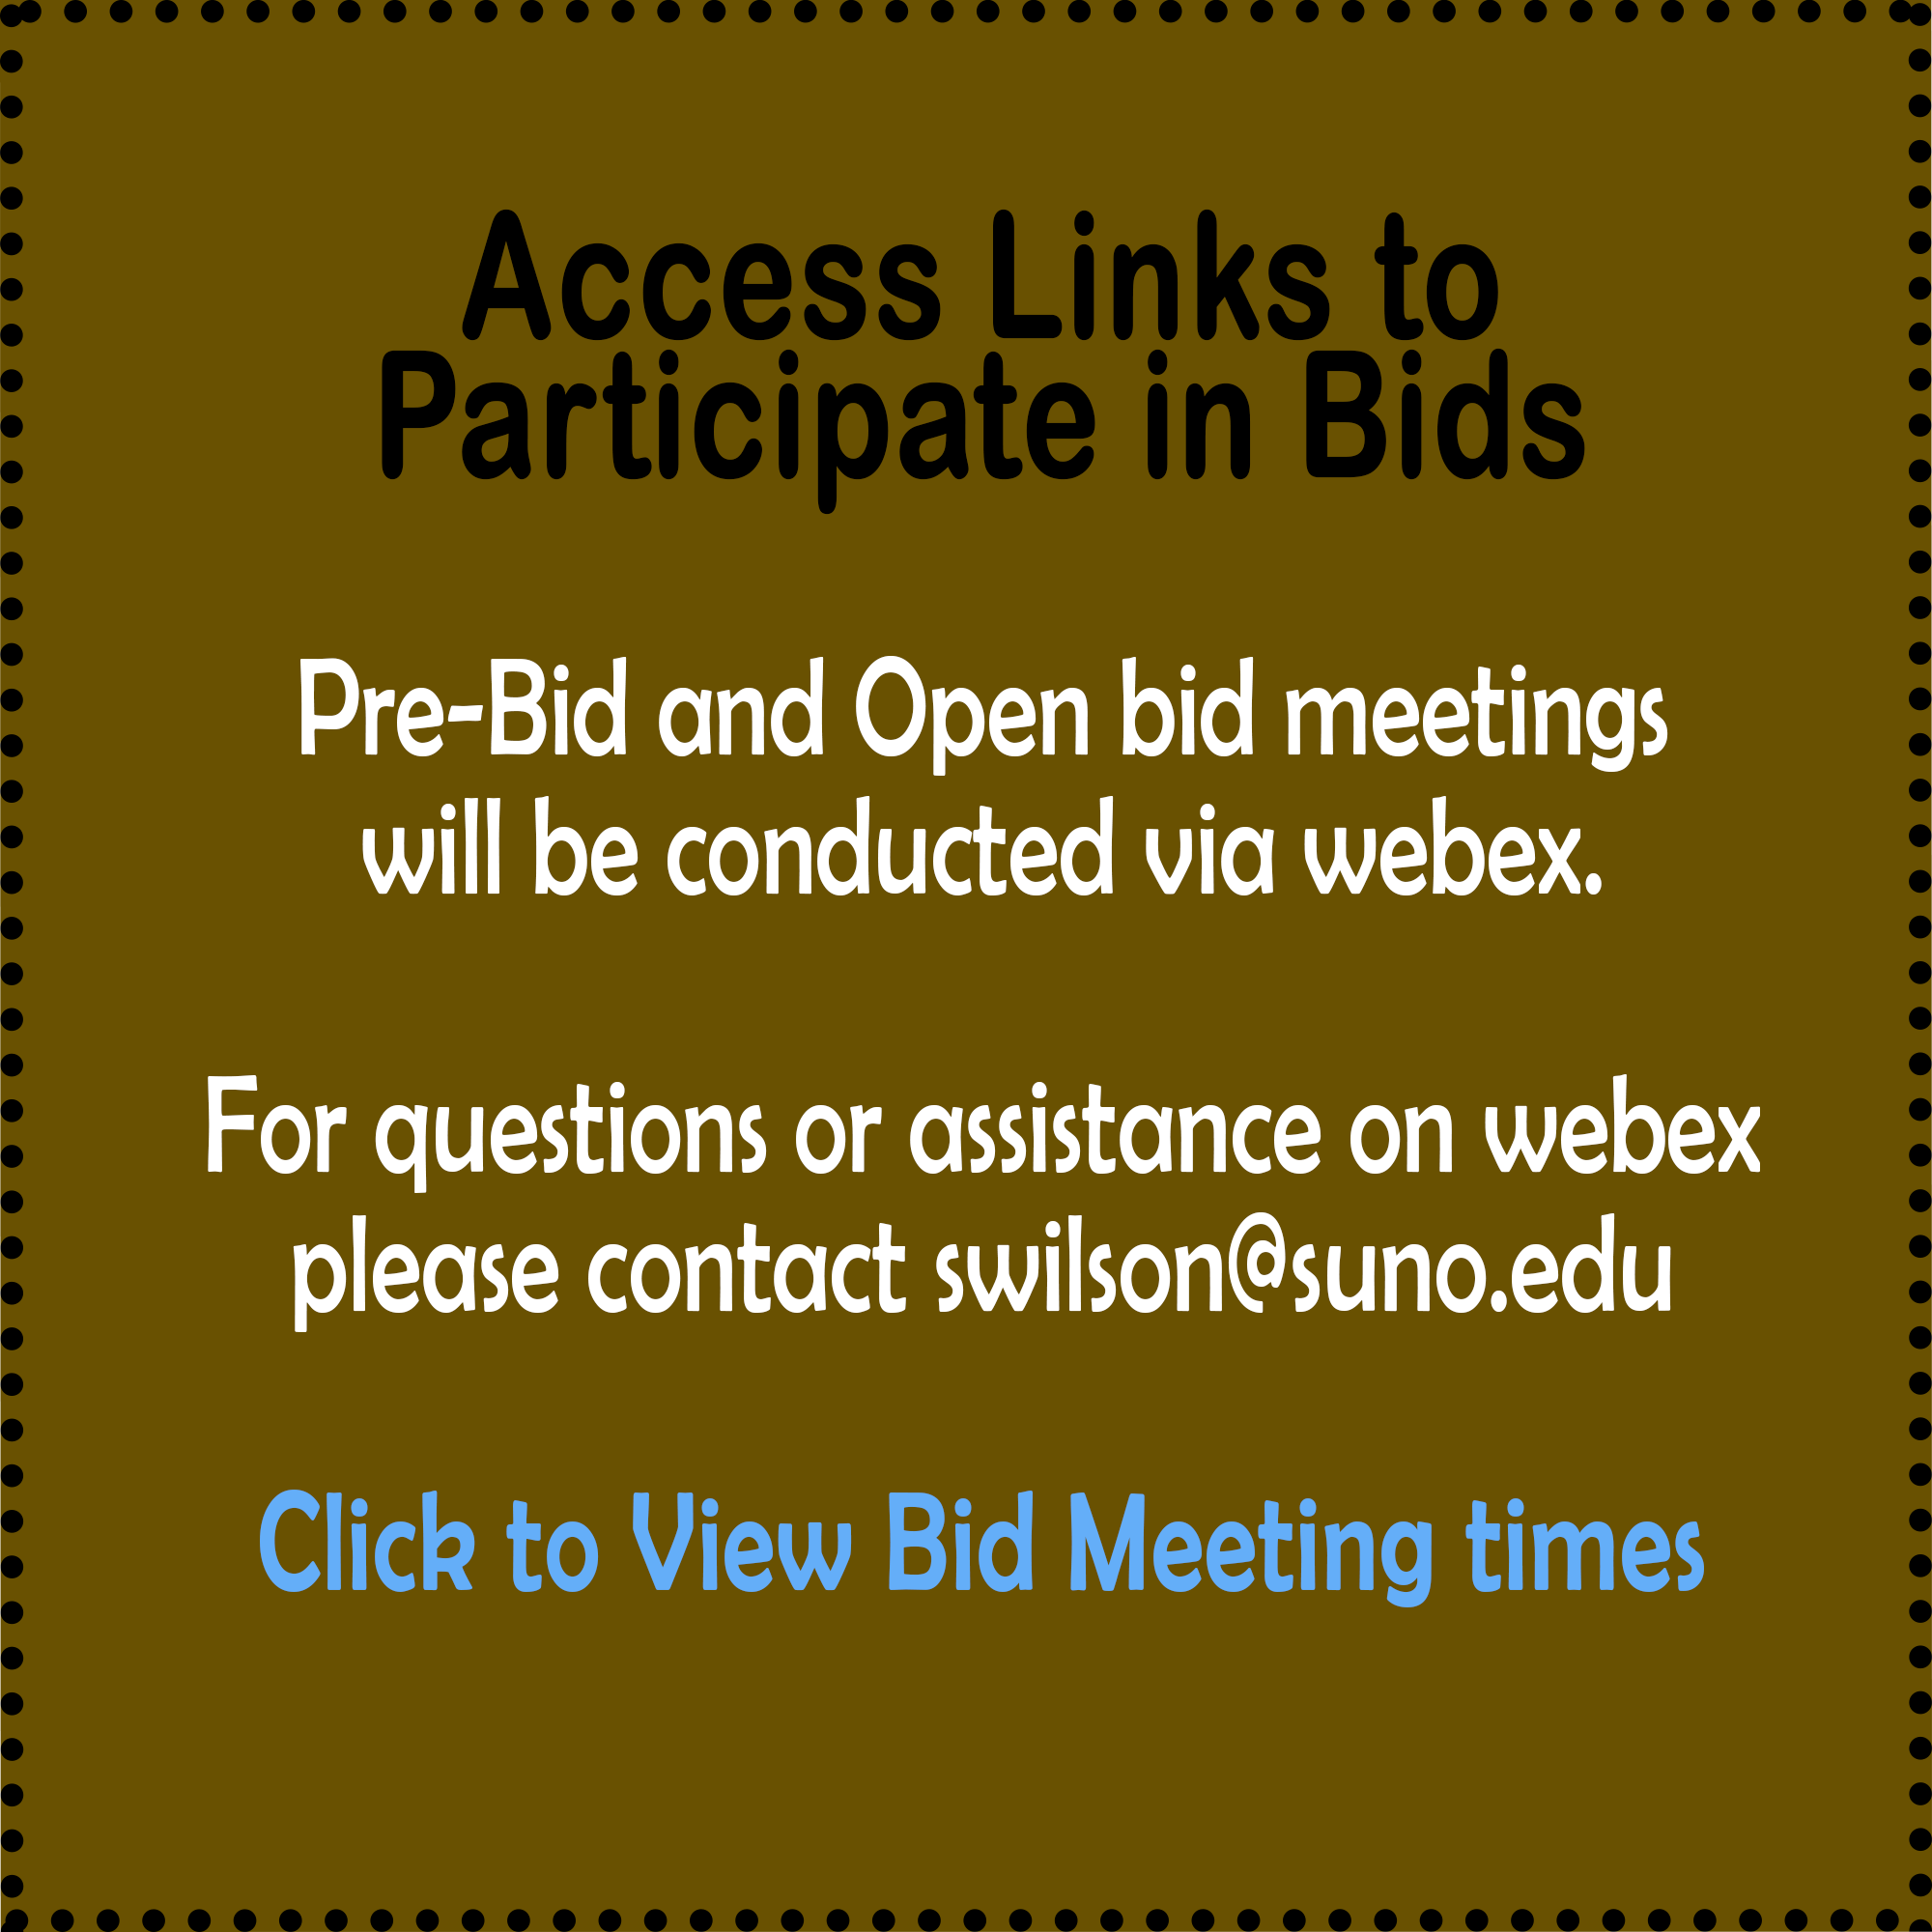 Access links to Participate in Bids